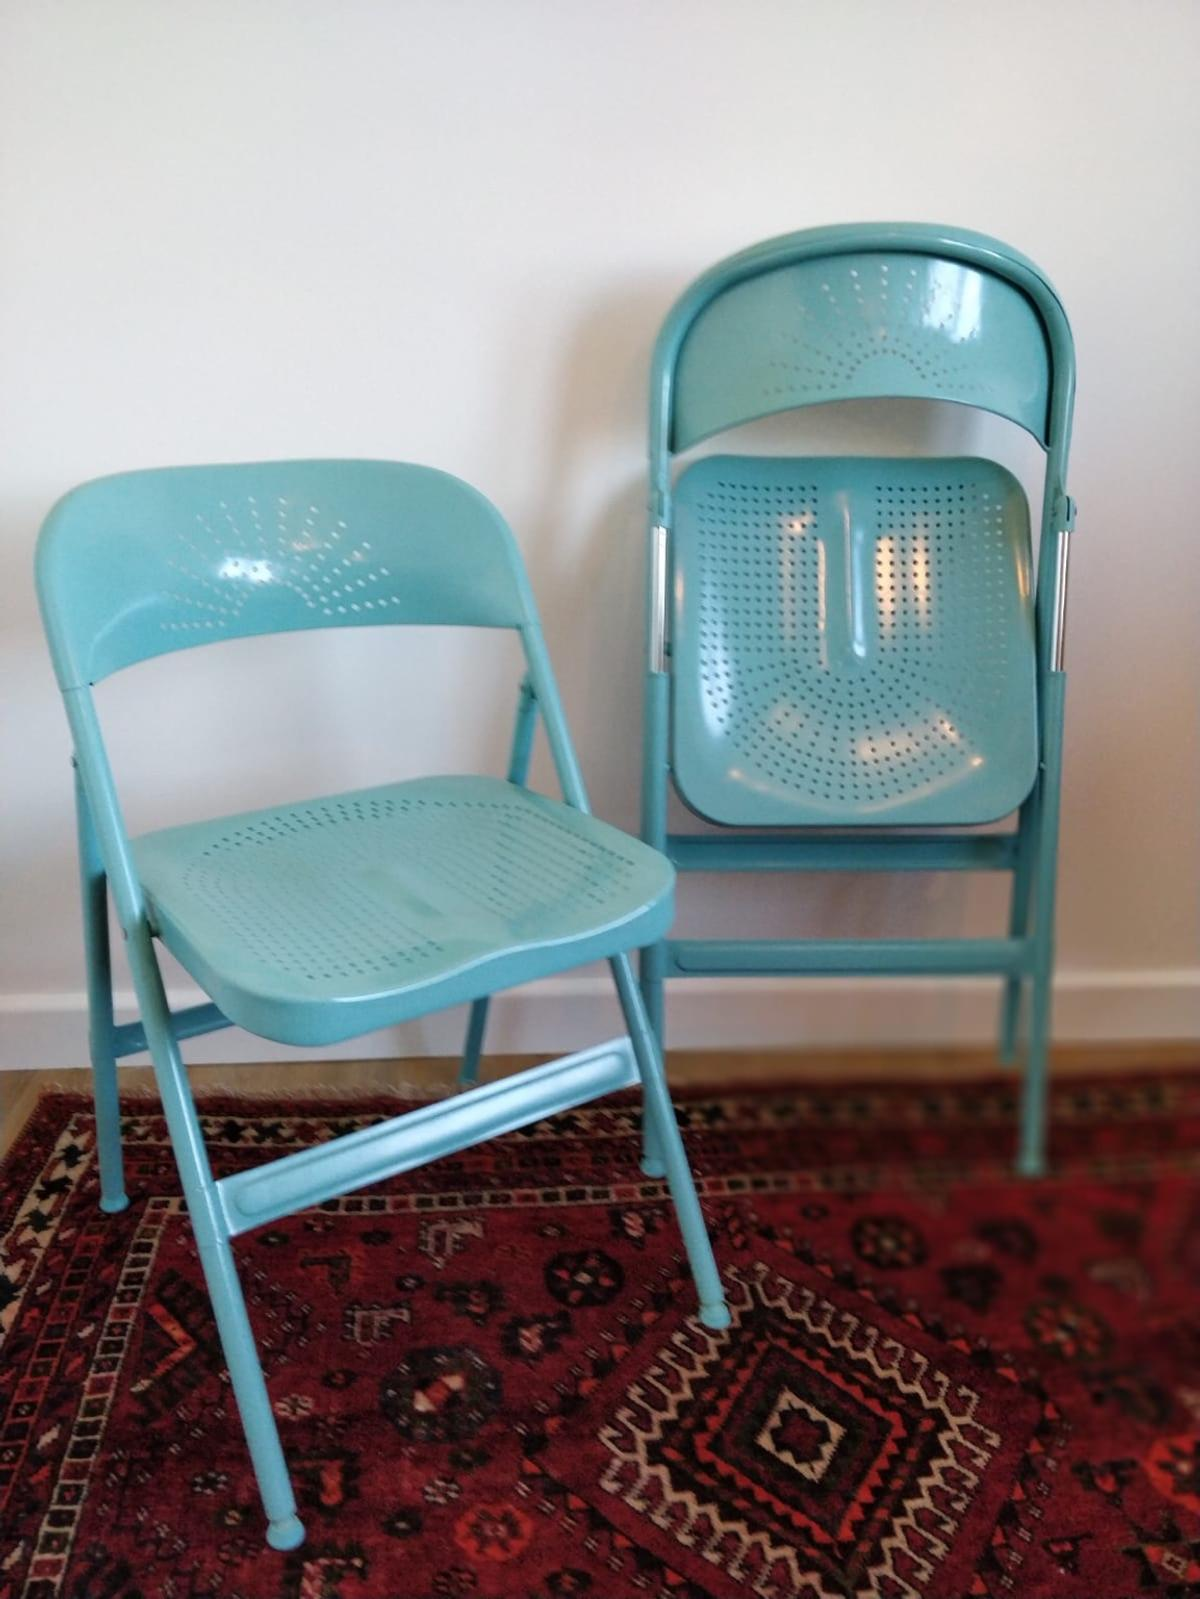 Outstanding Ikea Frode Pair Of Folding Chairs Turquoise Lamtechconsult Wood Chair Design Ideas Lamtechconsultcom